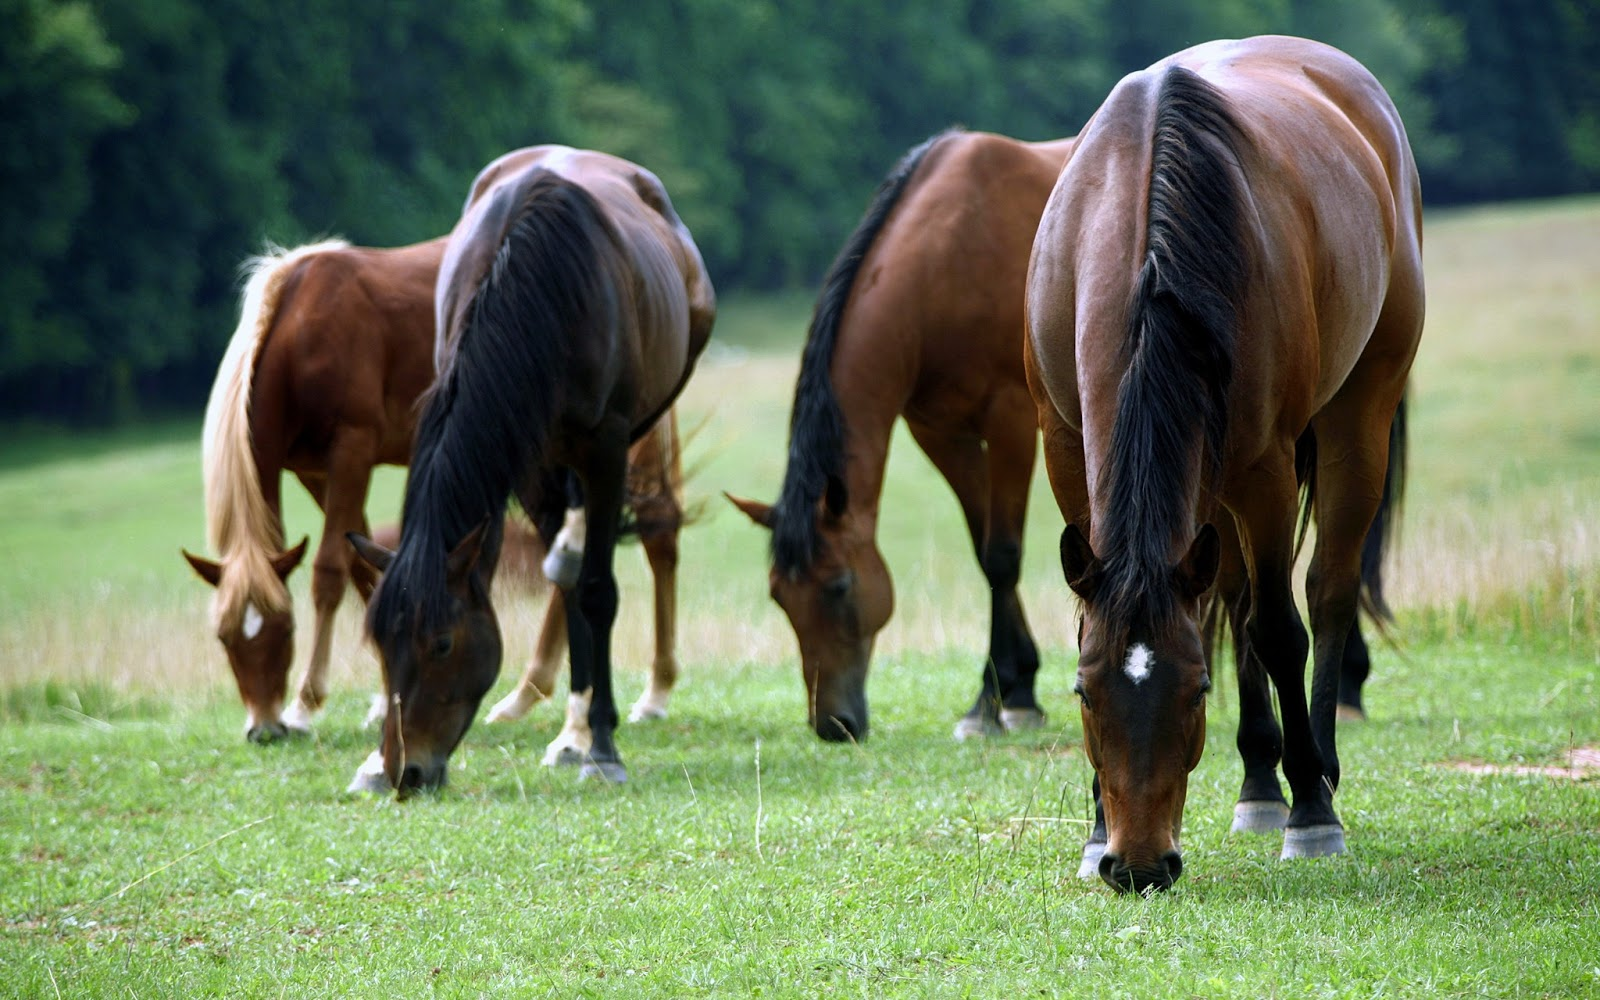 Popular   Wallpaper Horse Family - Equestrian+hd+wallpapers  Pictures_12956.jpg